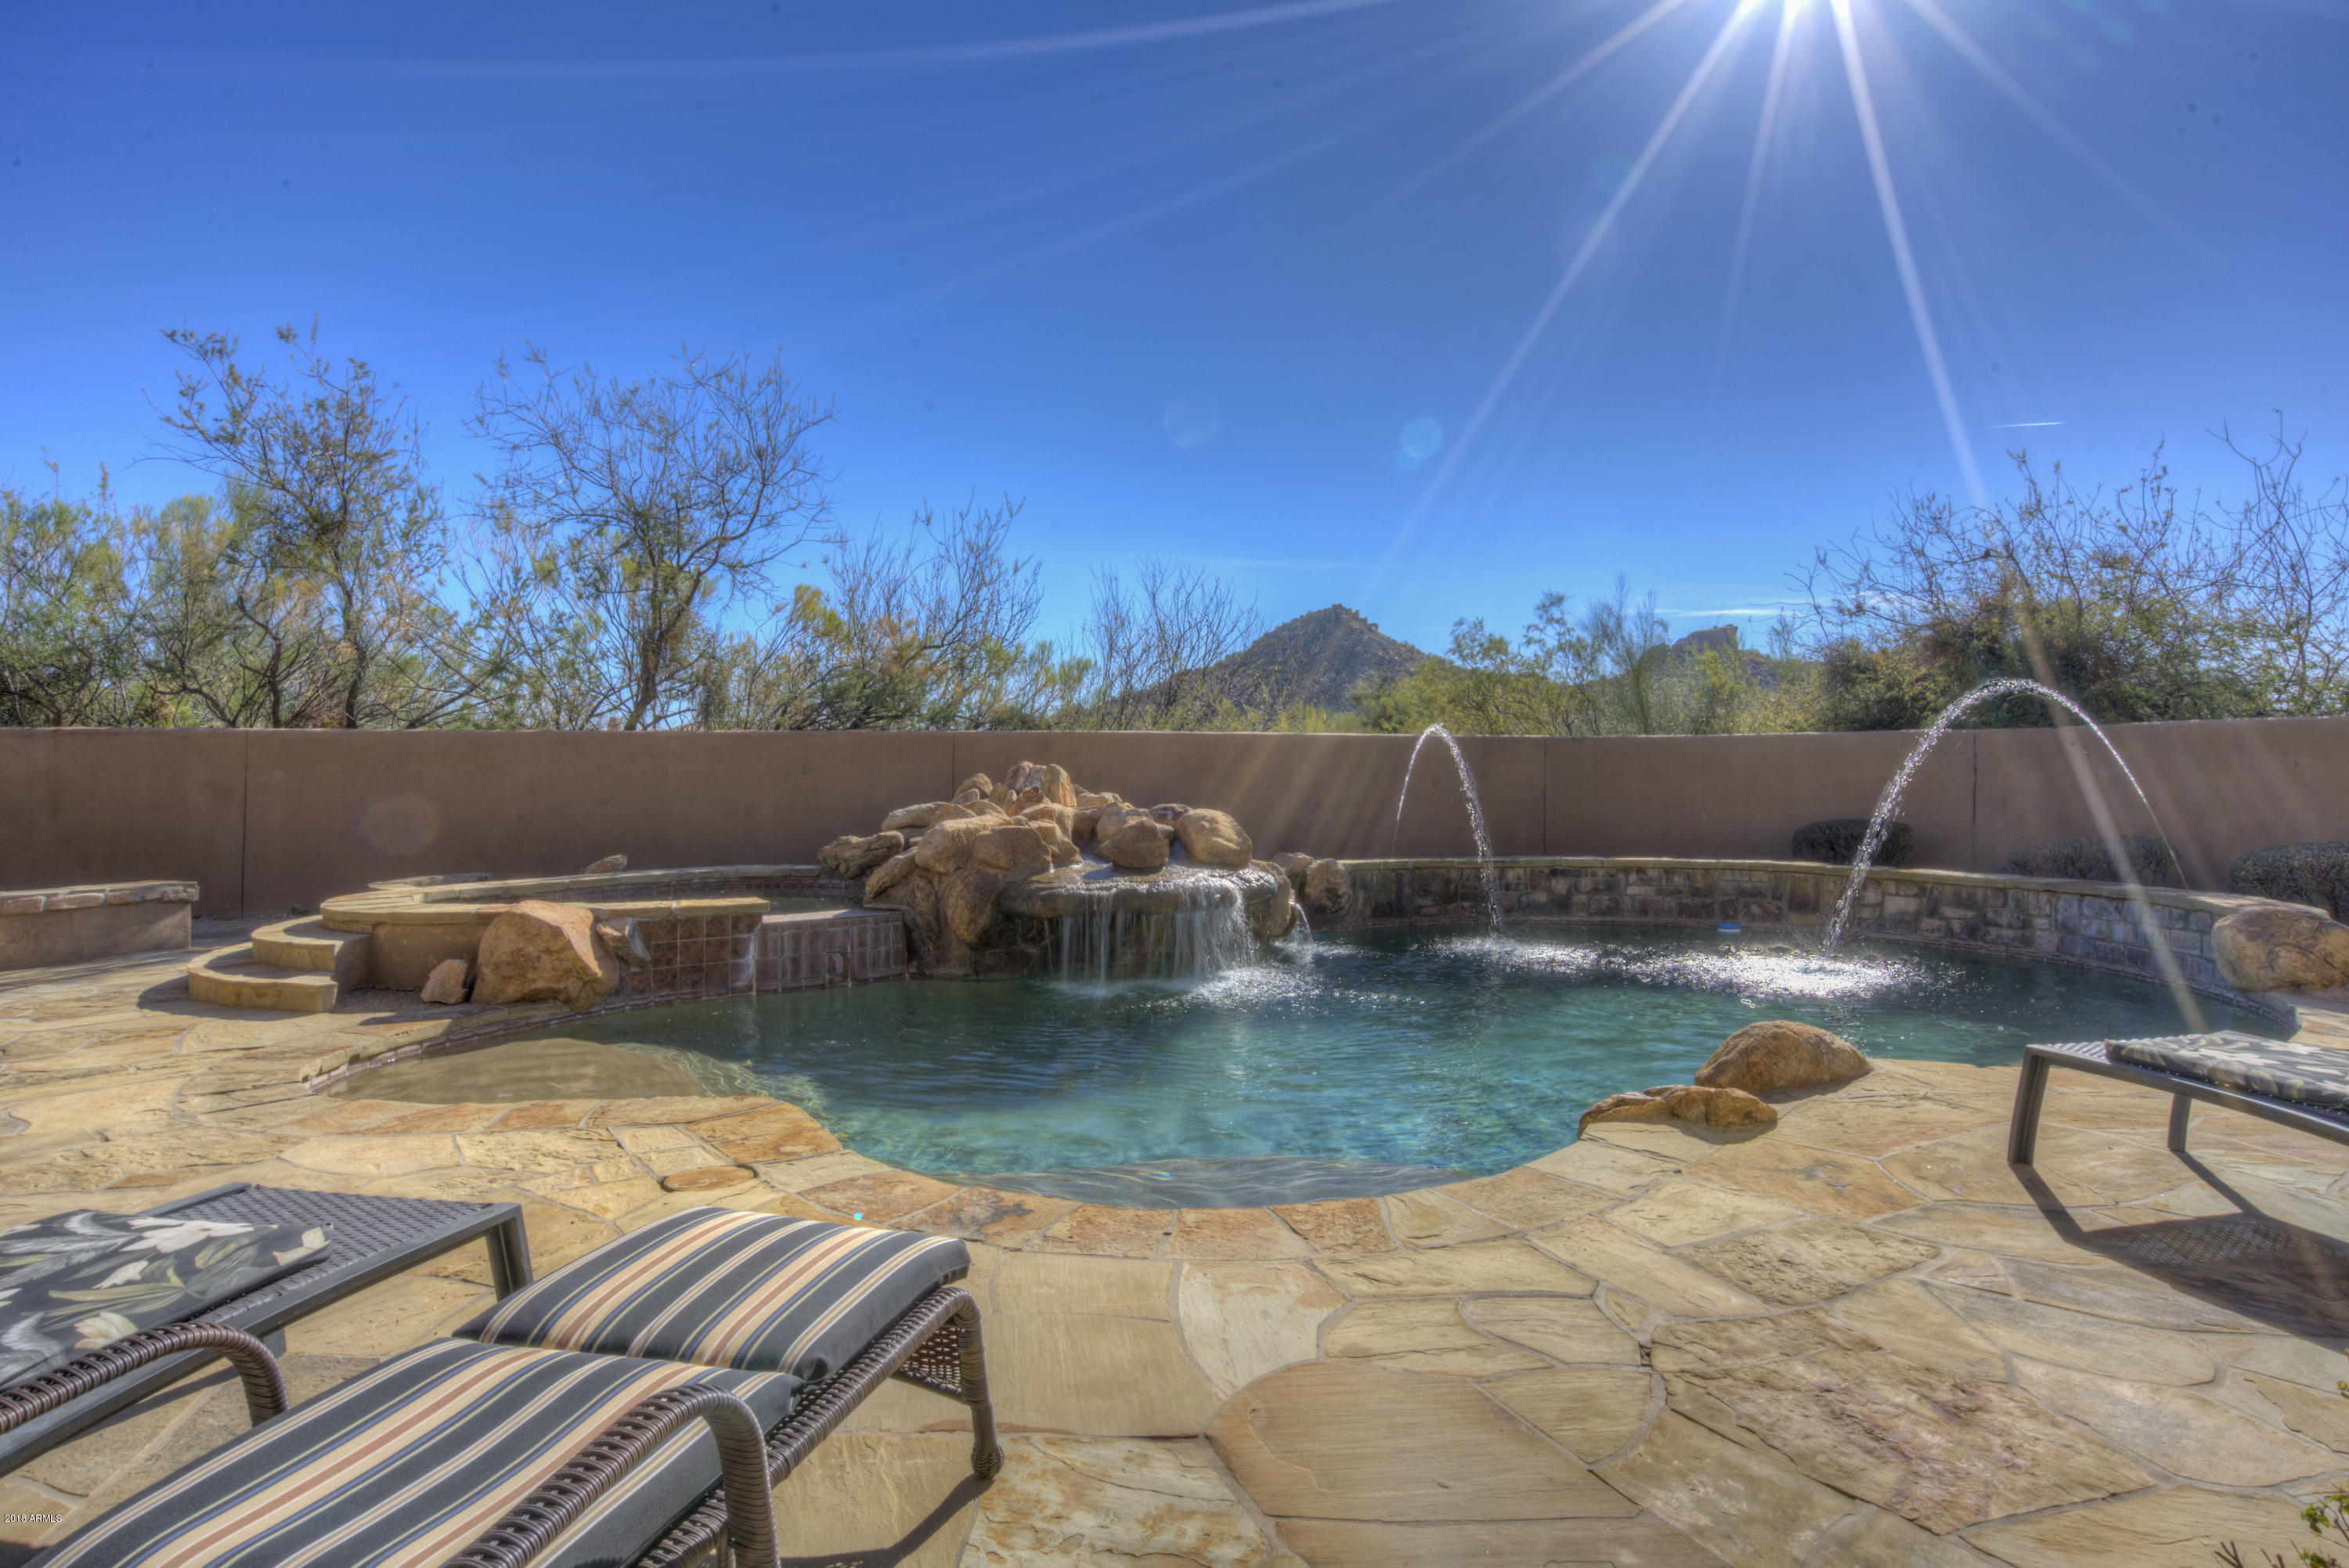 MLS 5730556 7859 E Thorntree Drive, Scottsdale, AZ 85266 Scottsdale AZ The Boulders